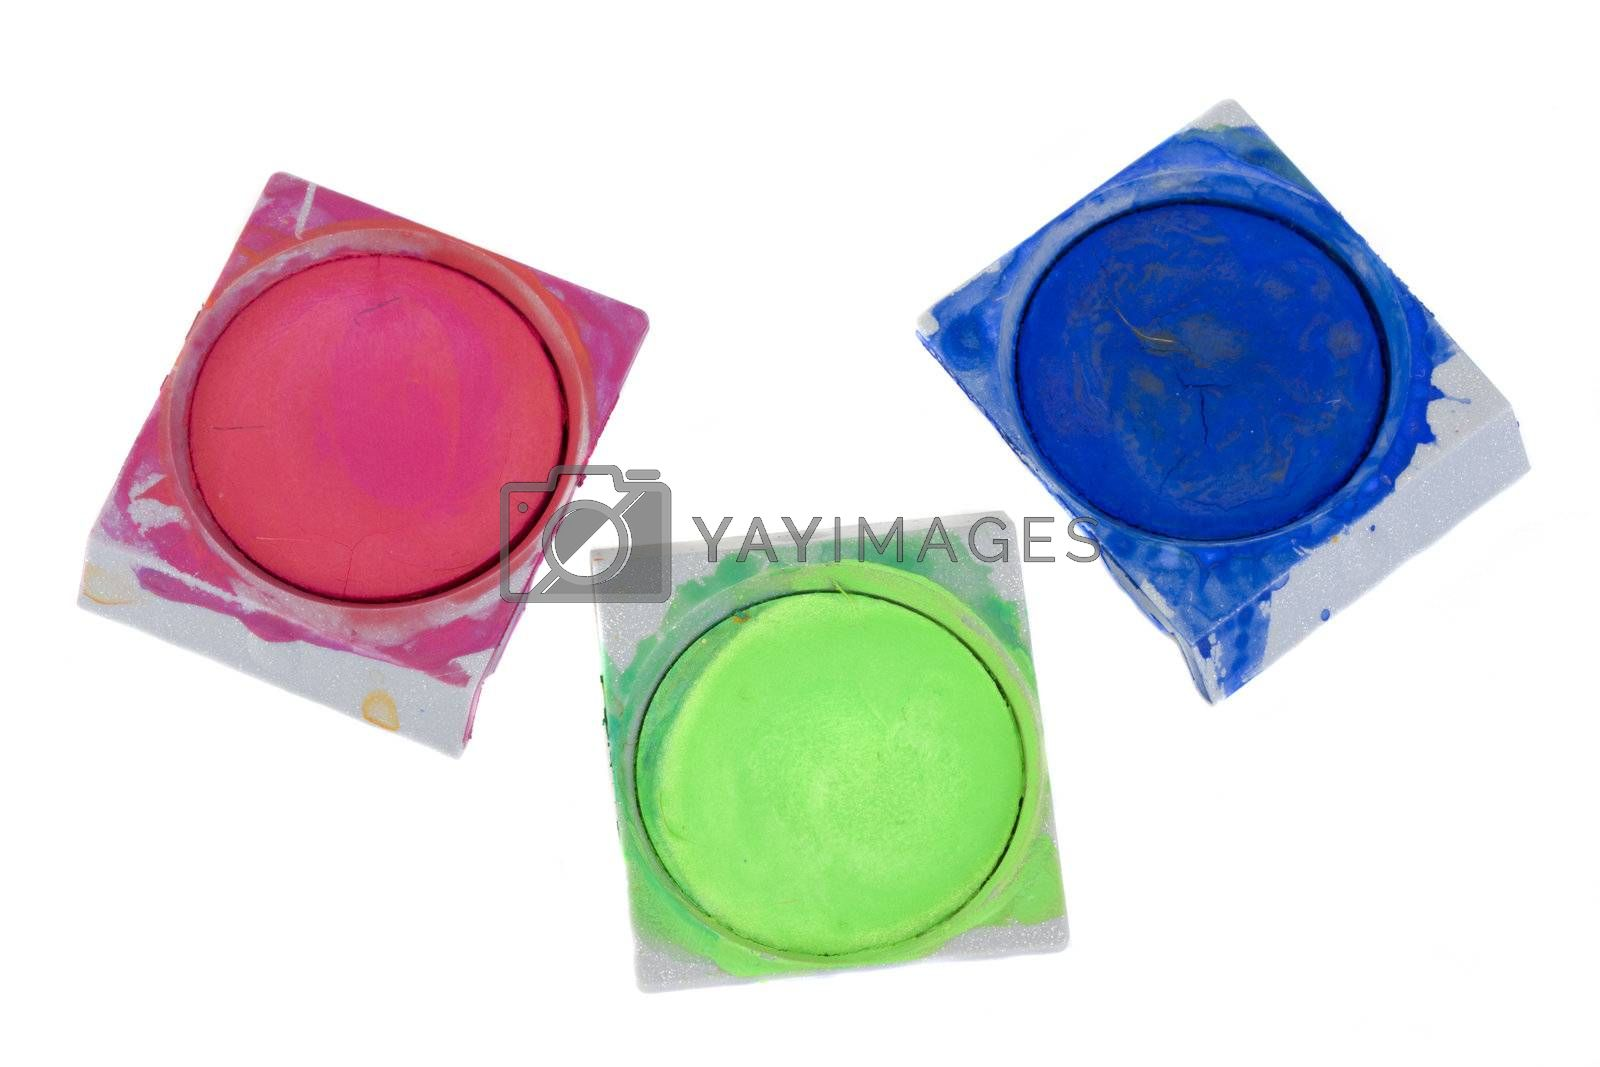 red, green and blue watercolor pots isolated on white